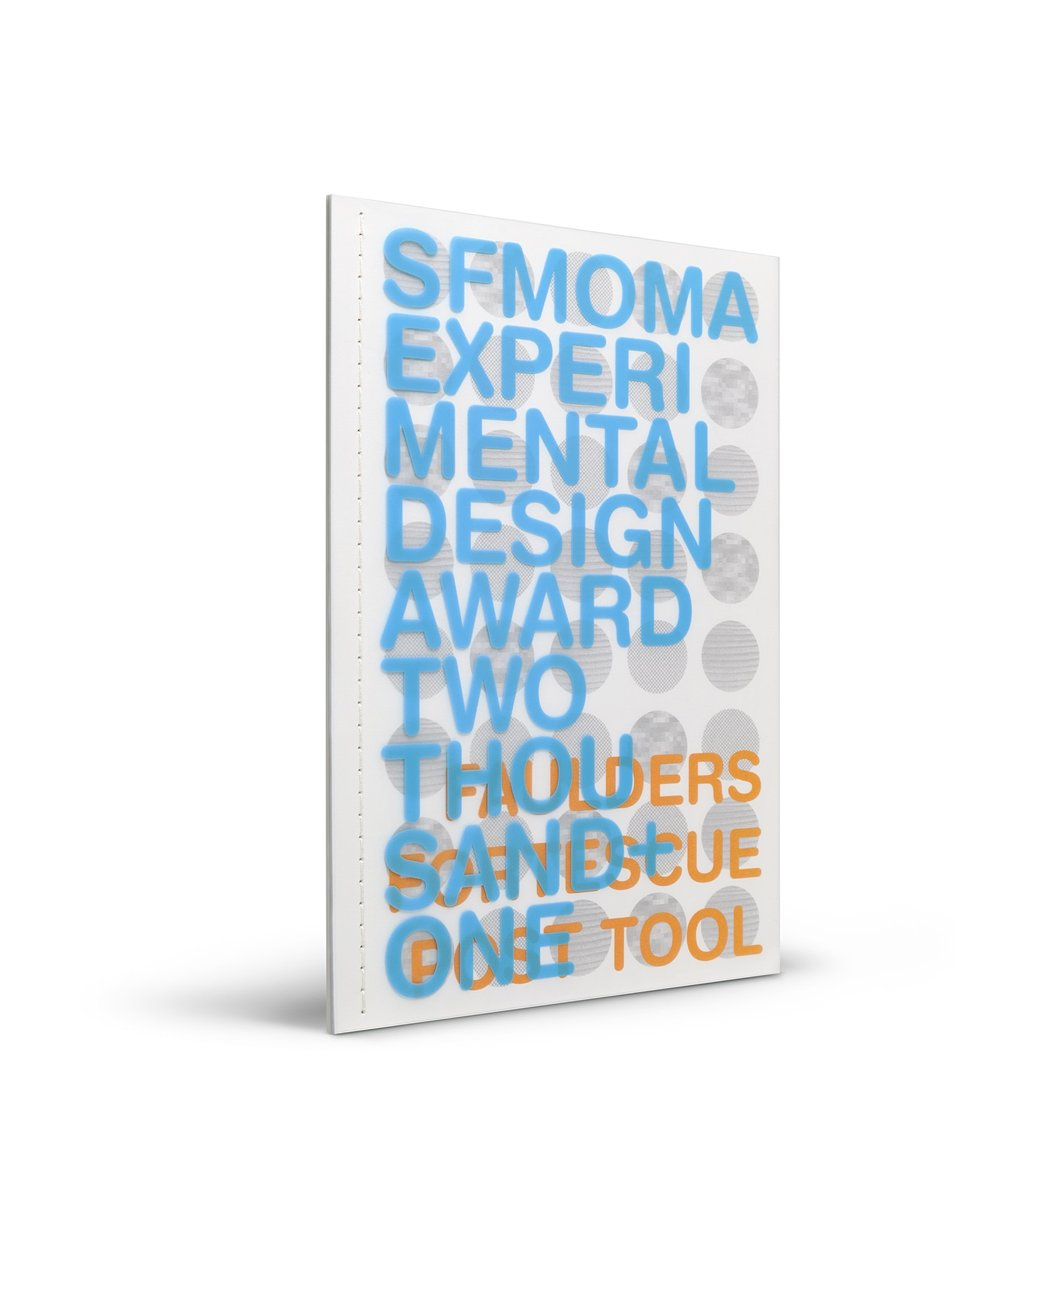 SFMOMA Experimental Design Award publication cover